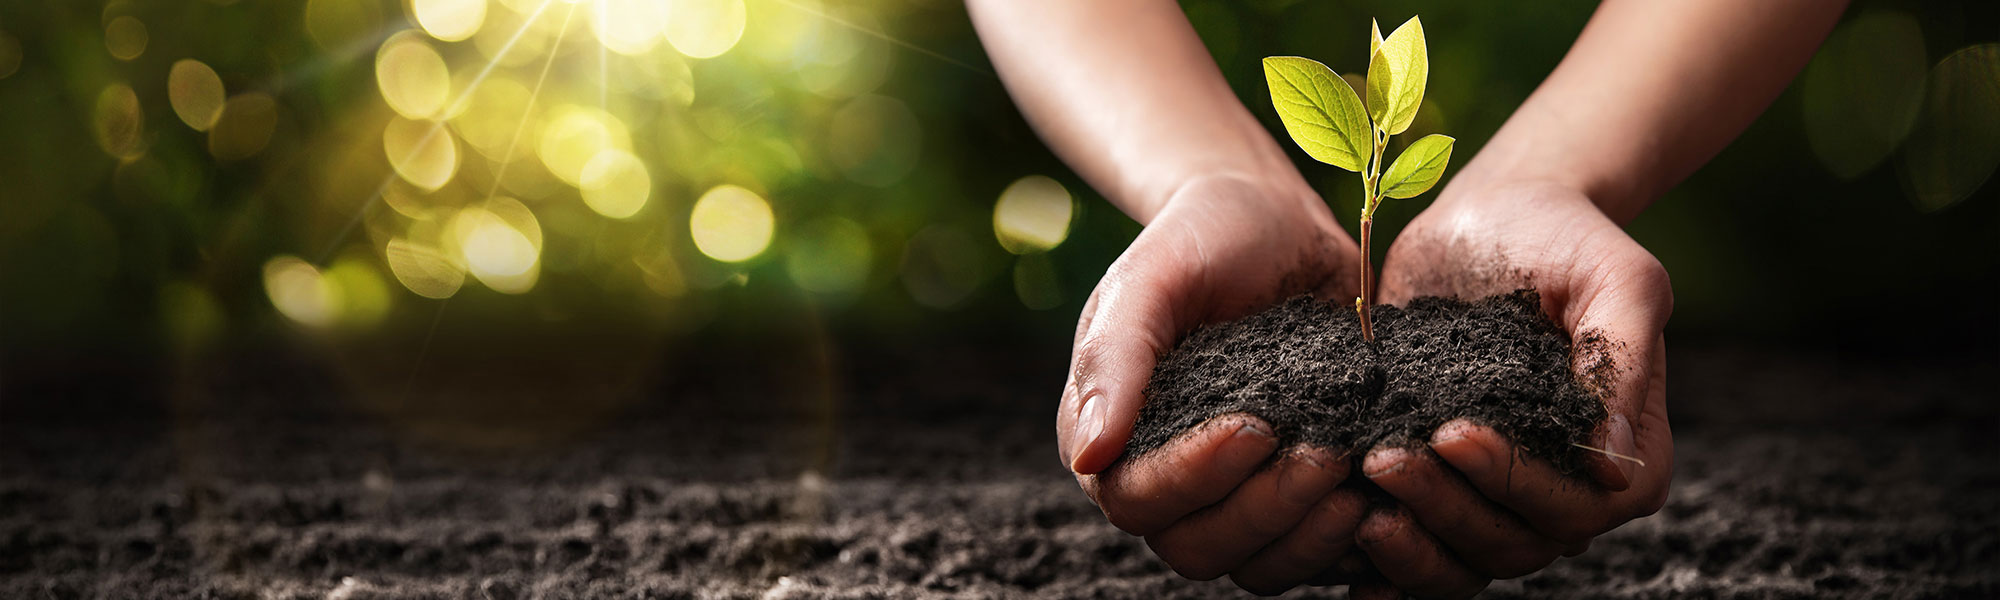 Soil, and plant in palm's hand